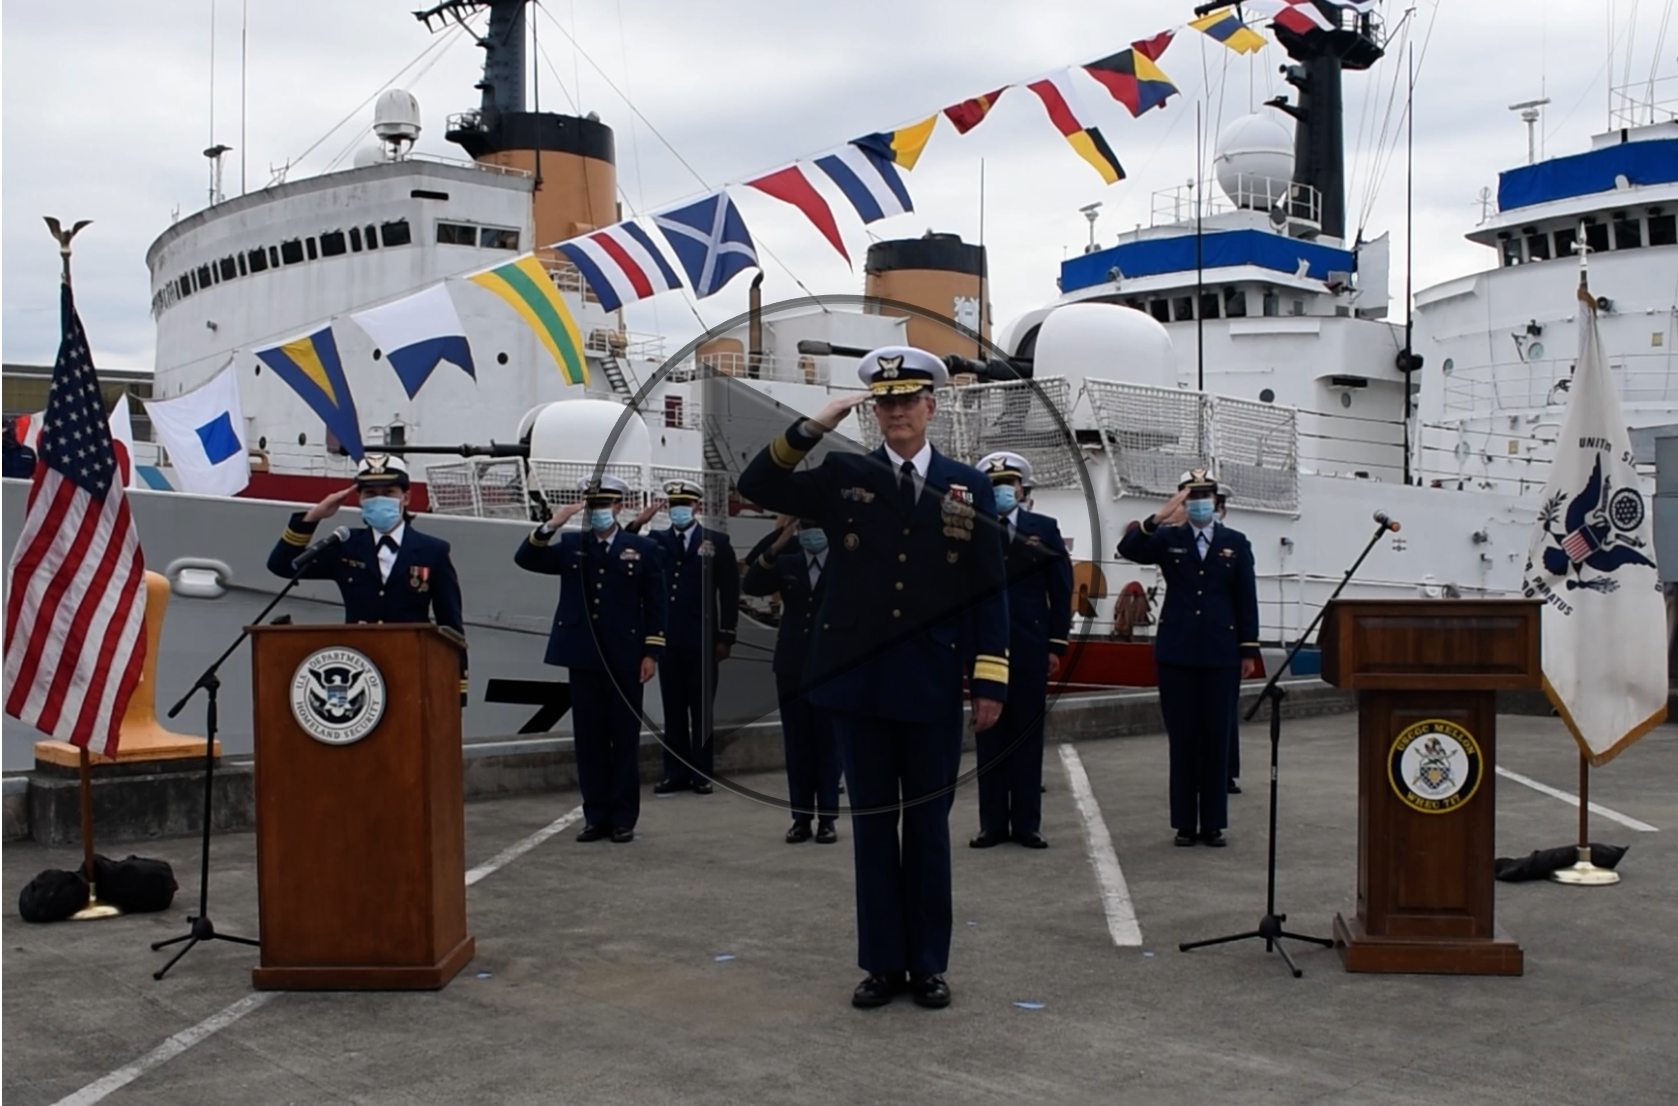 Coast Guard high endurance cutter decommissioned after 52 years of distinguished service